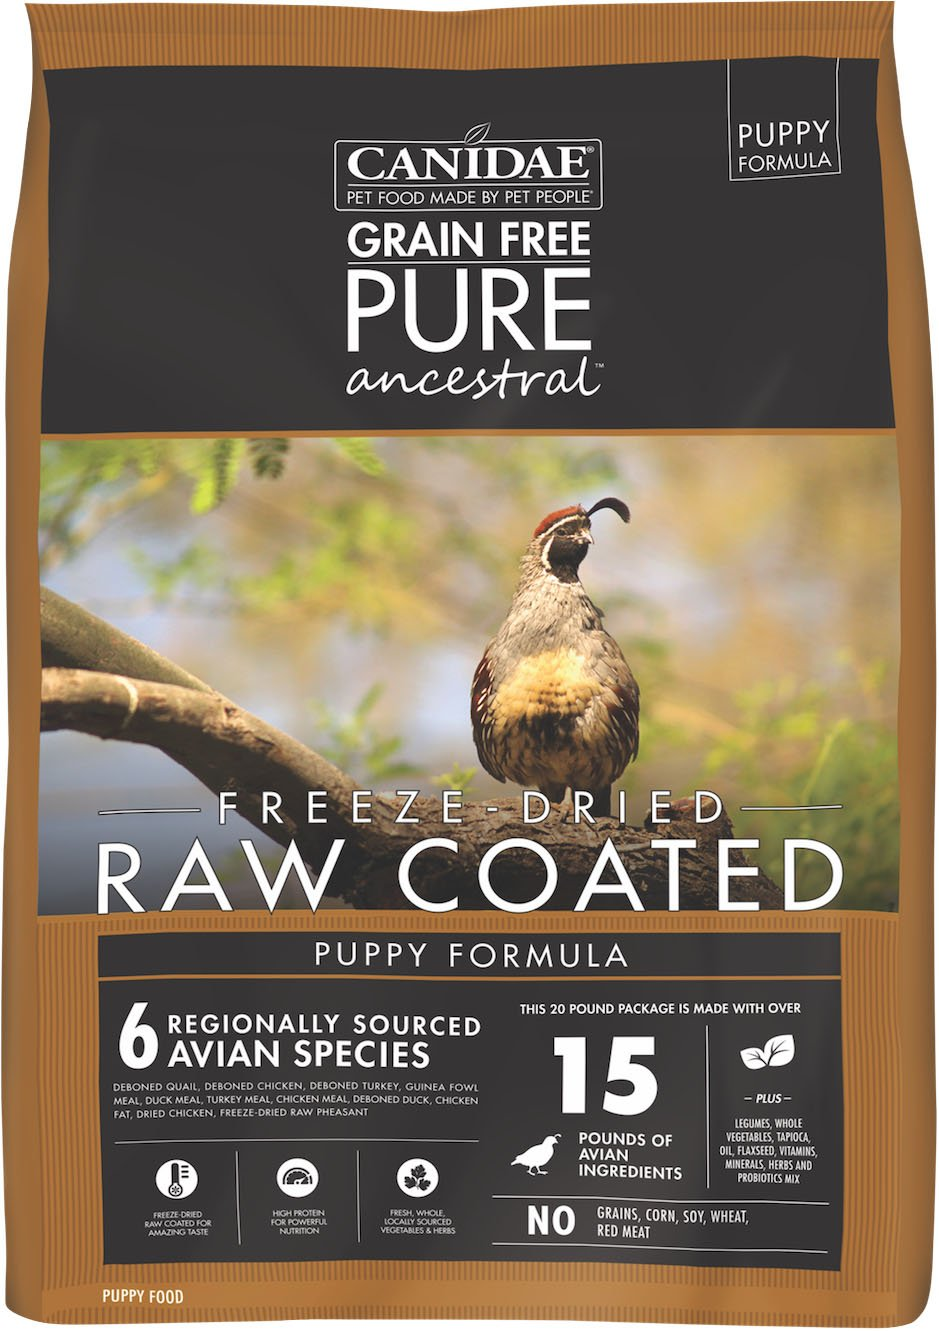 Canidae Pure Ancestral Raw Coated Dry Dog Food - iPupnStuff.com